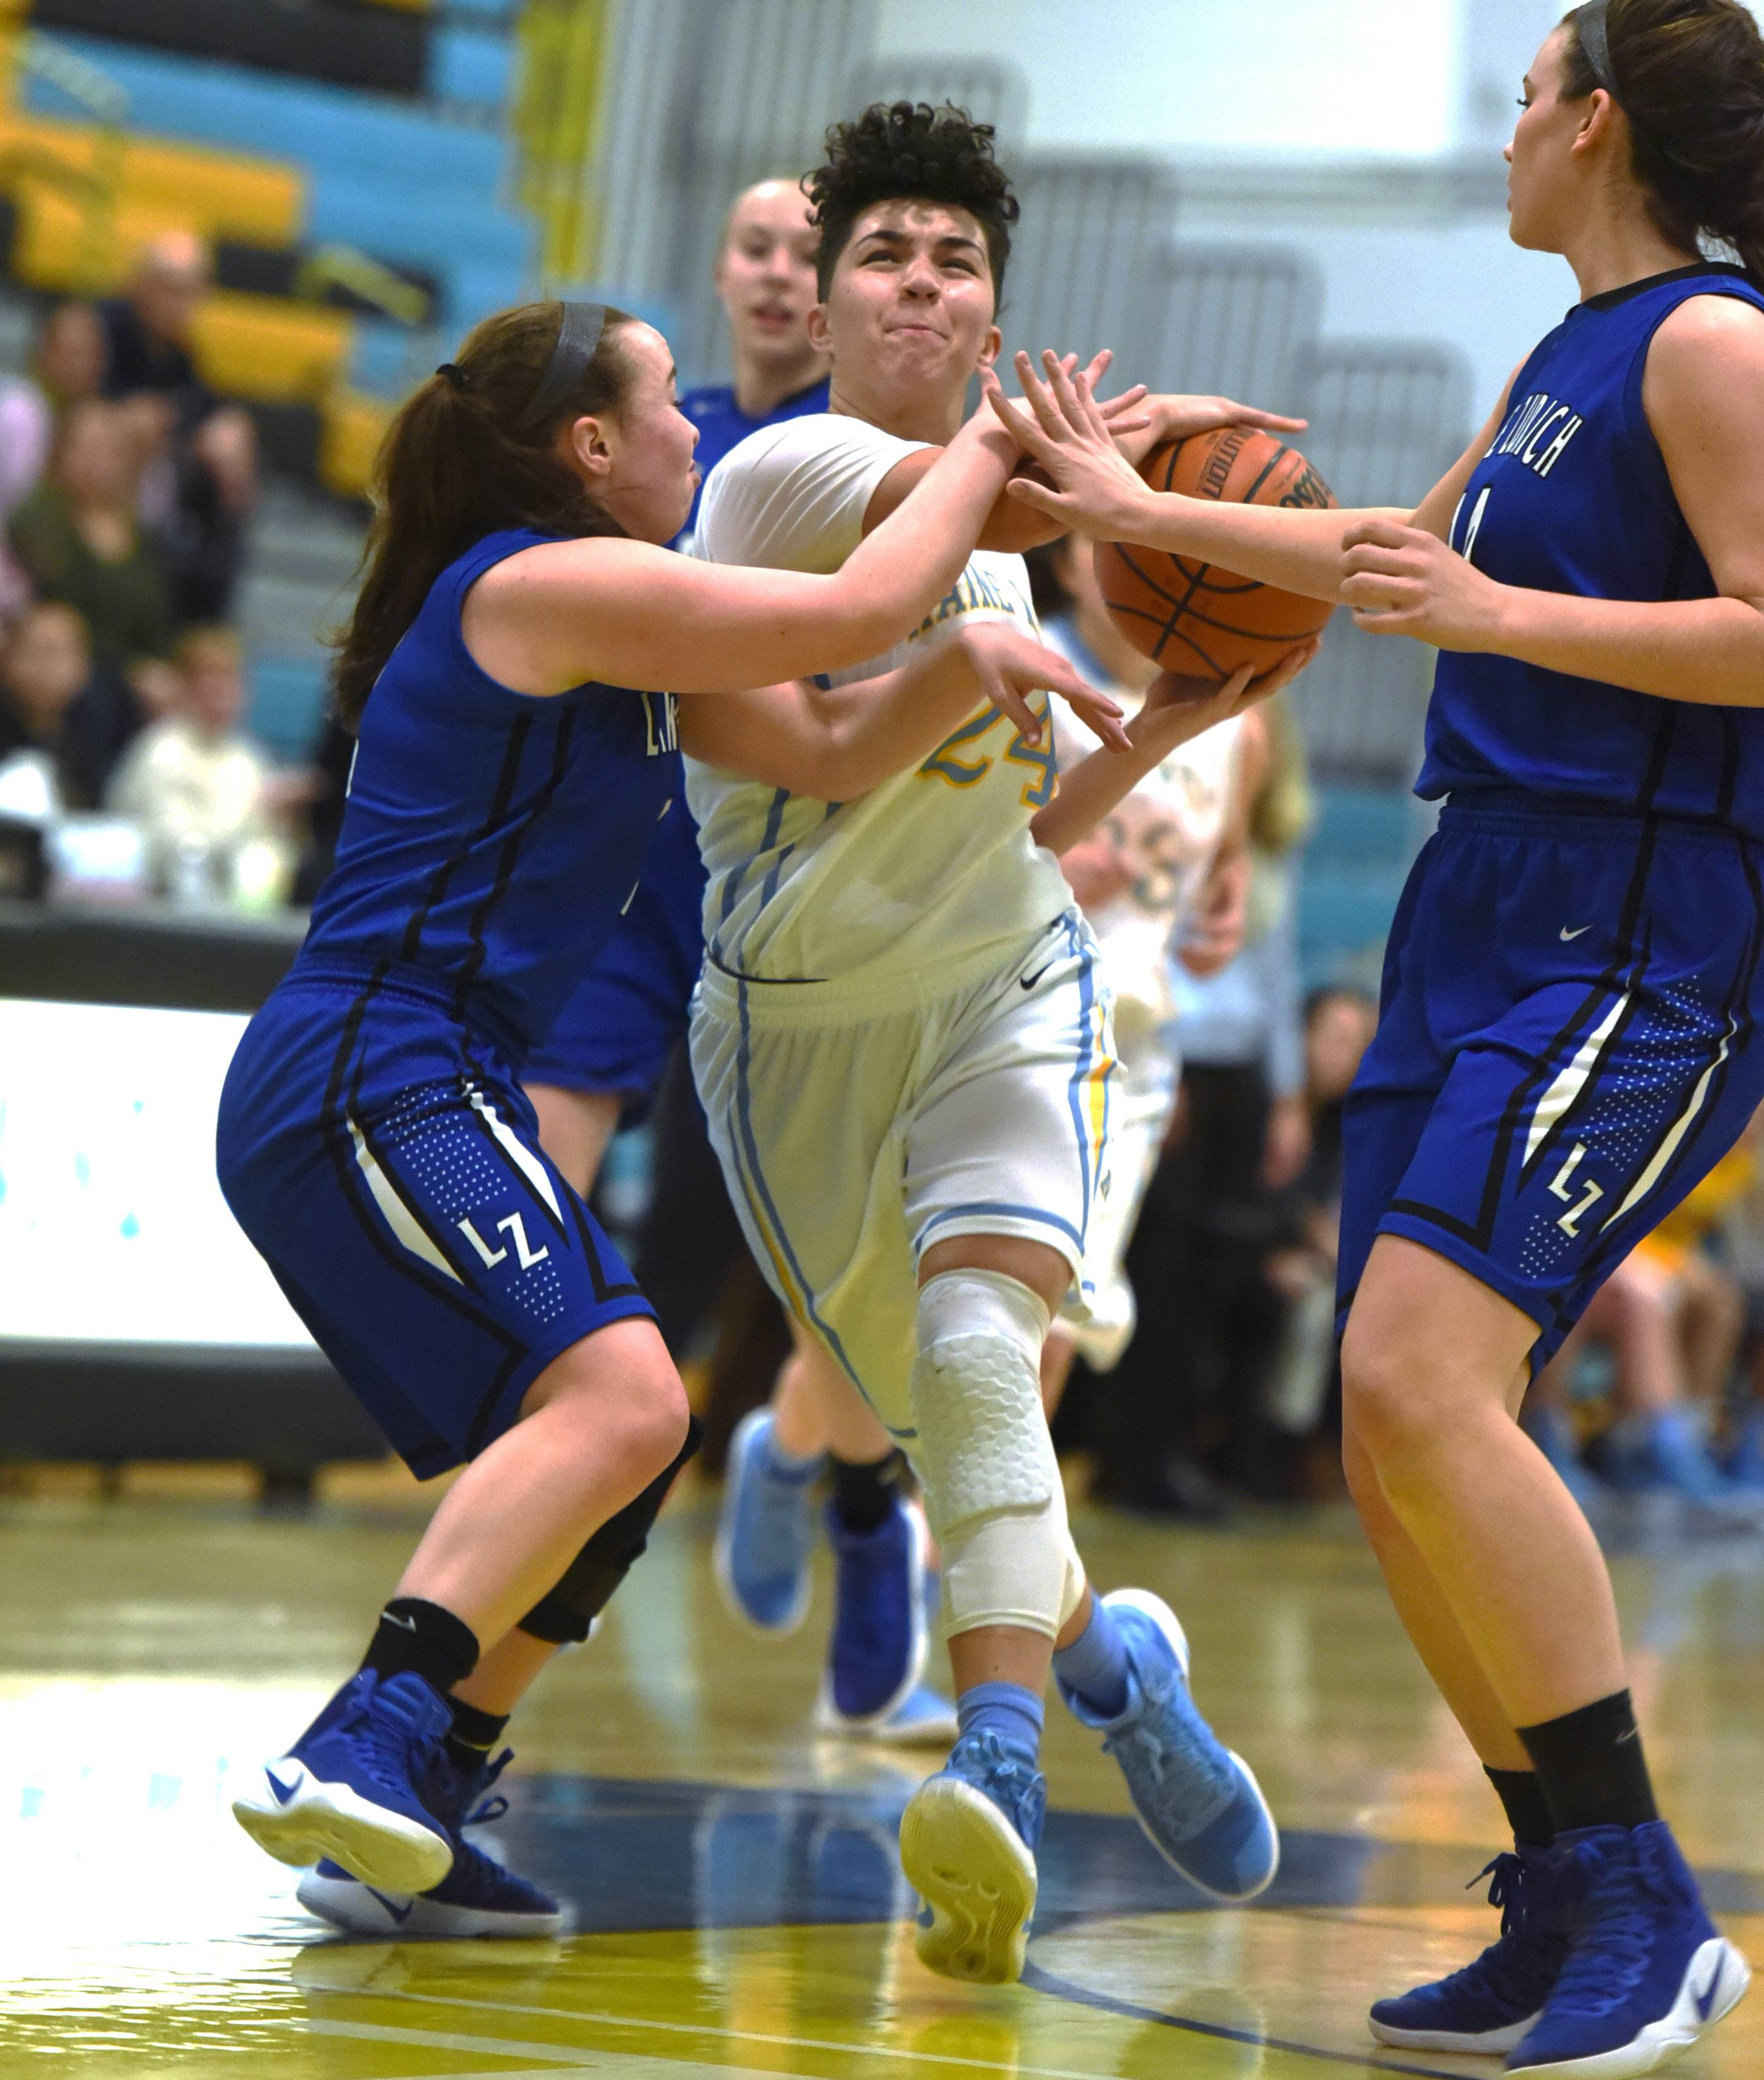 Maine West's Alisa Fallon, center, heads to the basket under heavy defensive pressure during Monday's game against Lake Zurich in Des Plaines.